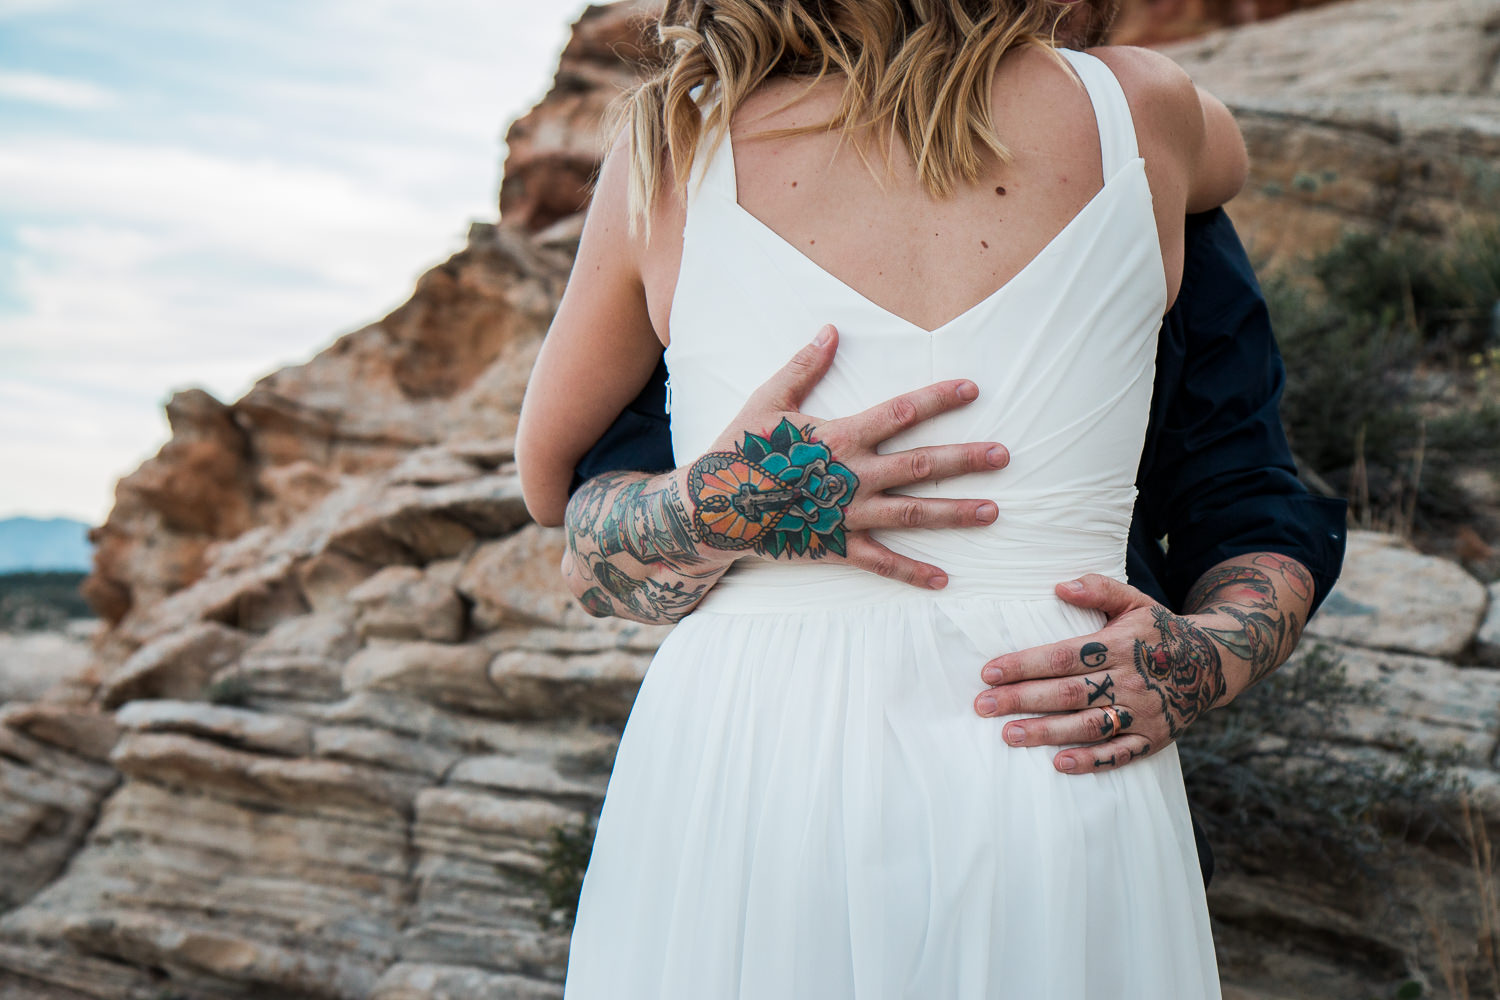 Tattooed couple exchange vows at an epic canyon overlook Southern Utah